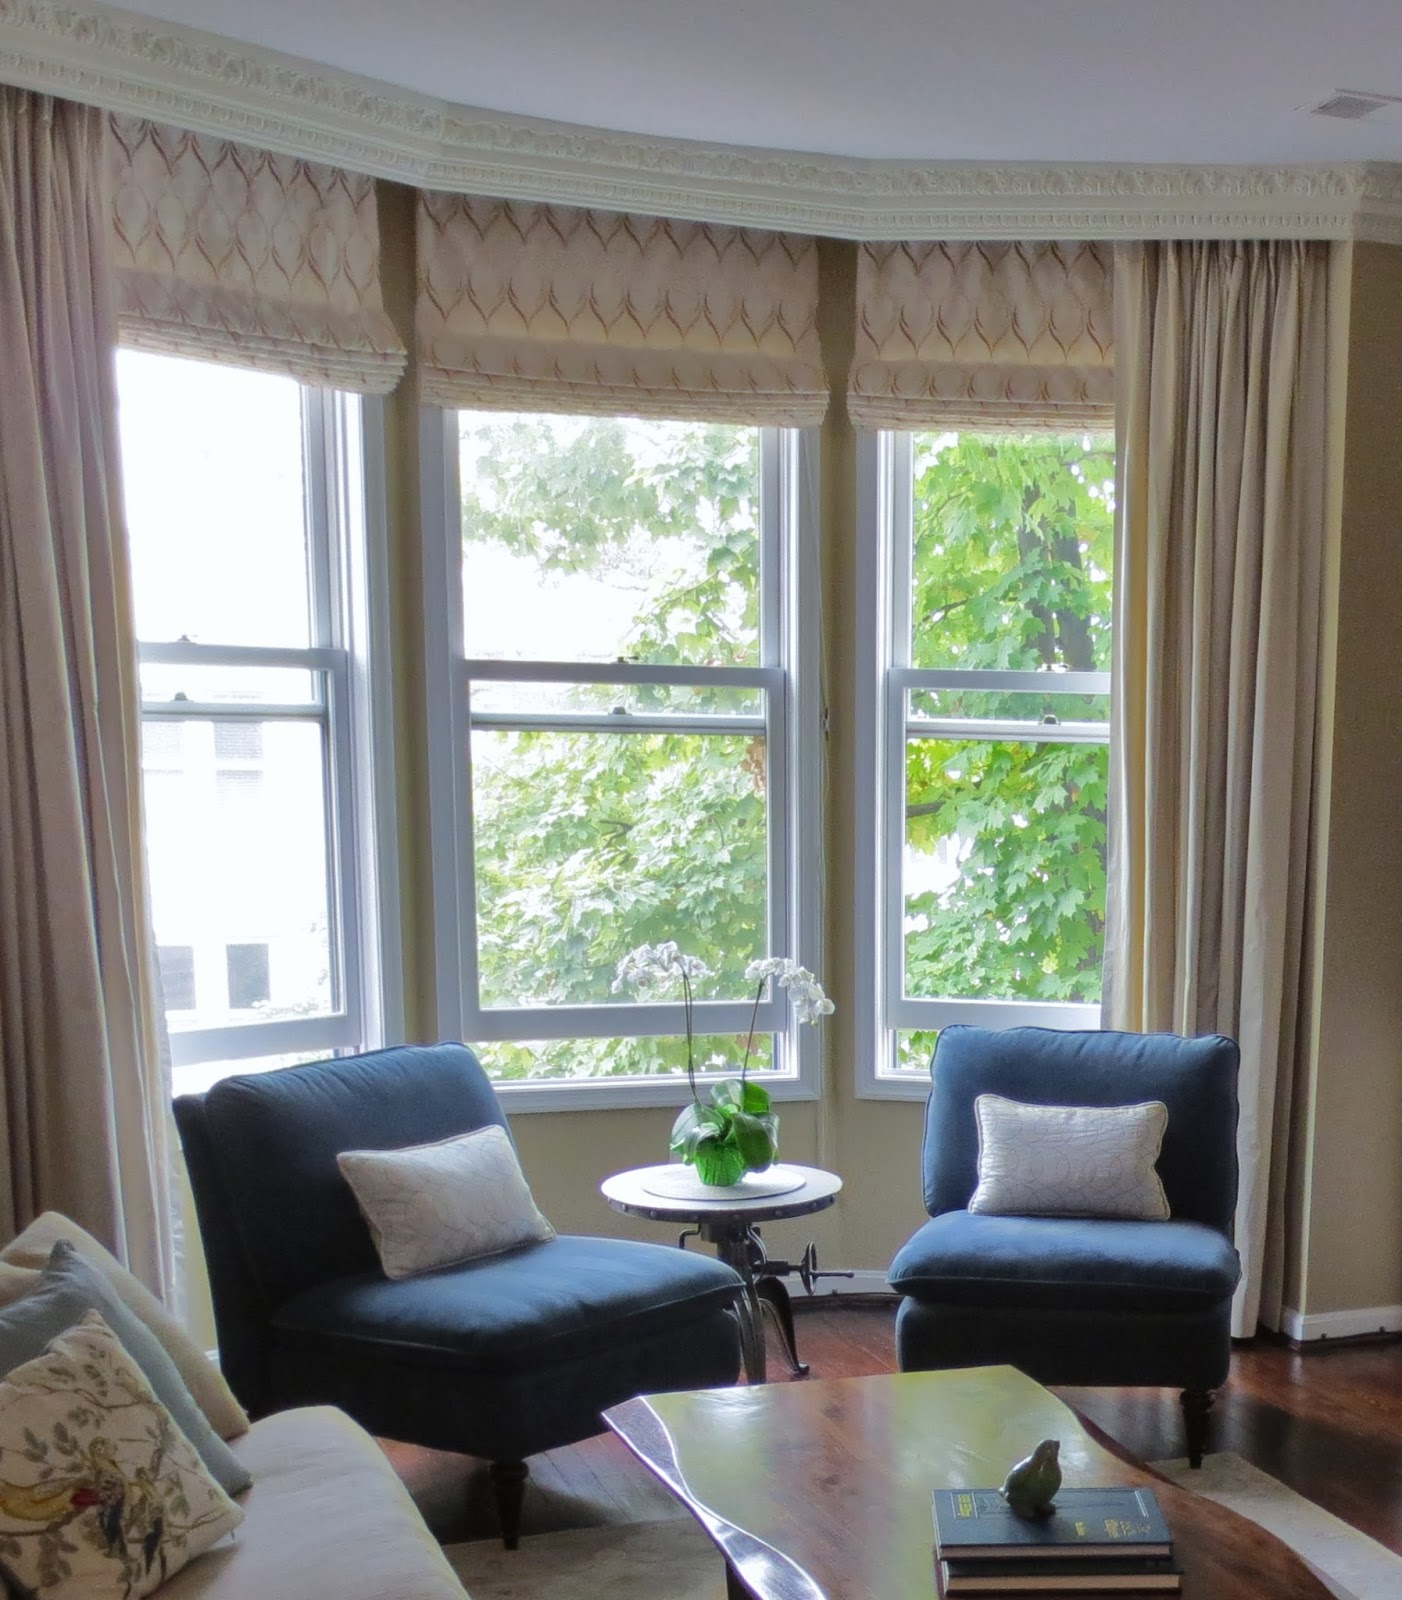 row house refuge a transitional living room heidi reused the roman shades left behind by the former homeowners and had drapes from an upstairs bedroom remade for the elegant bow window